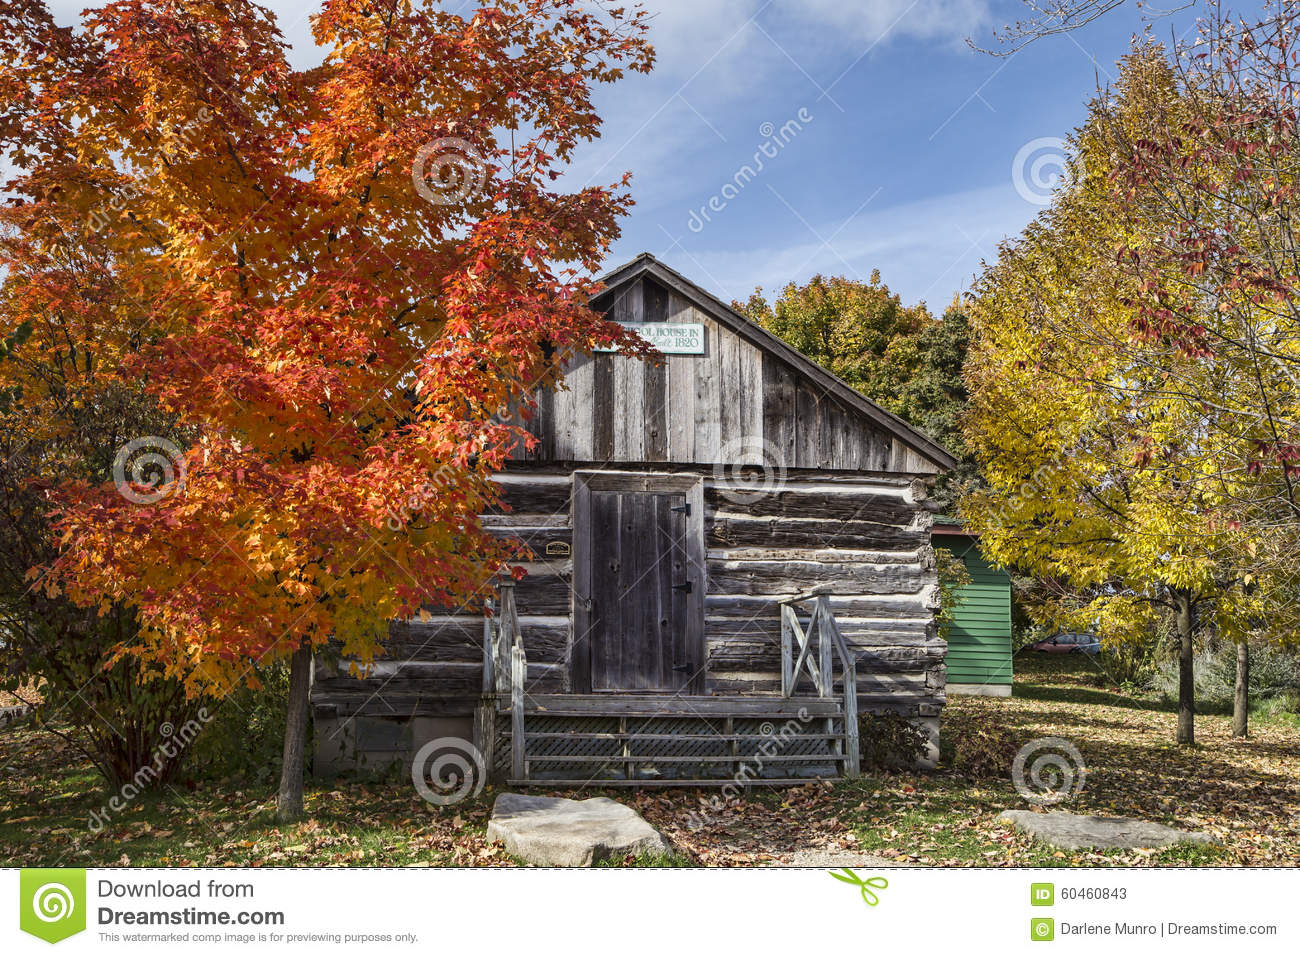 Old School House in Fall